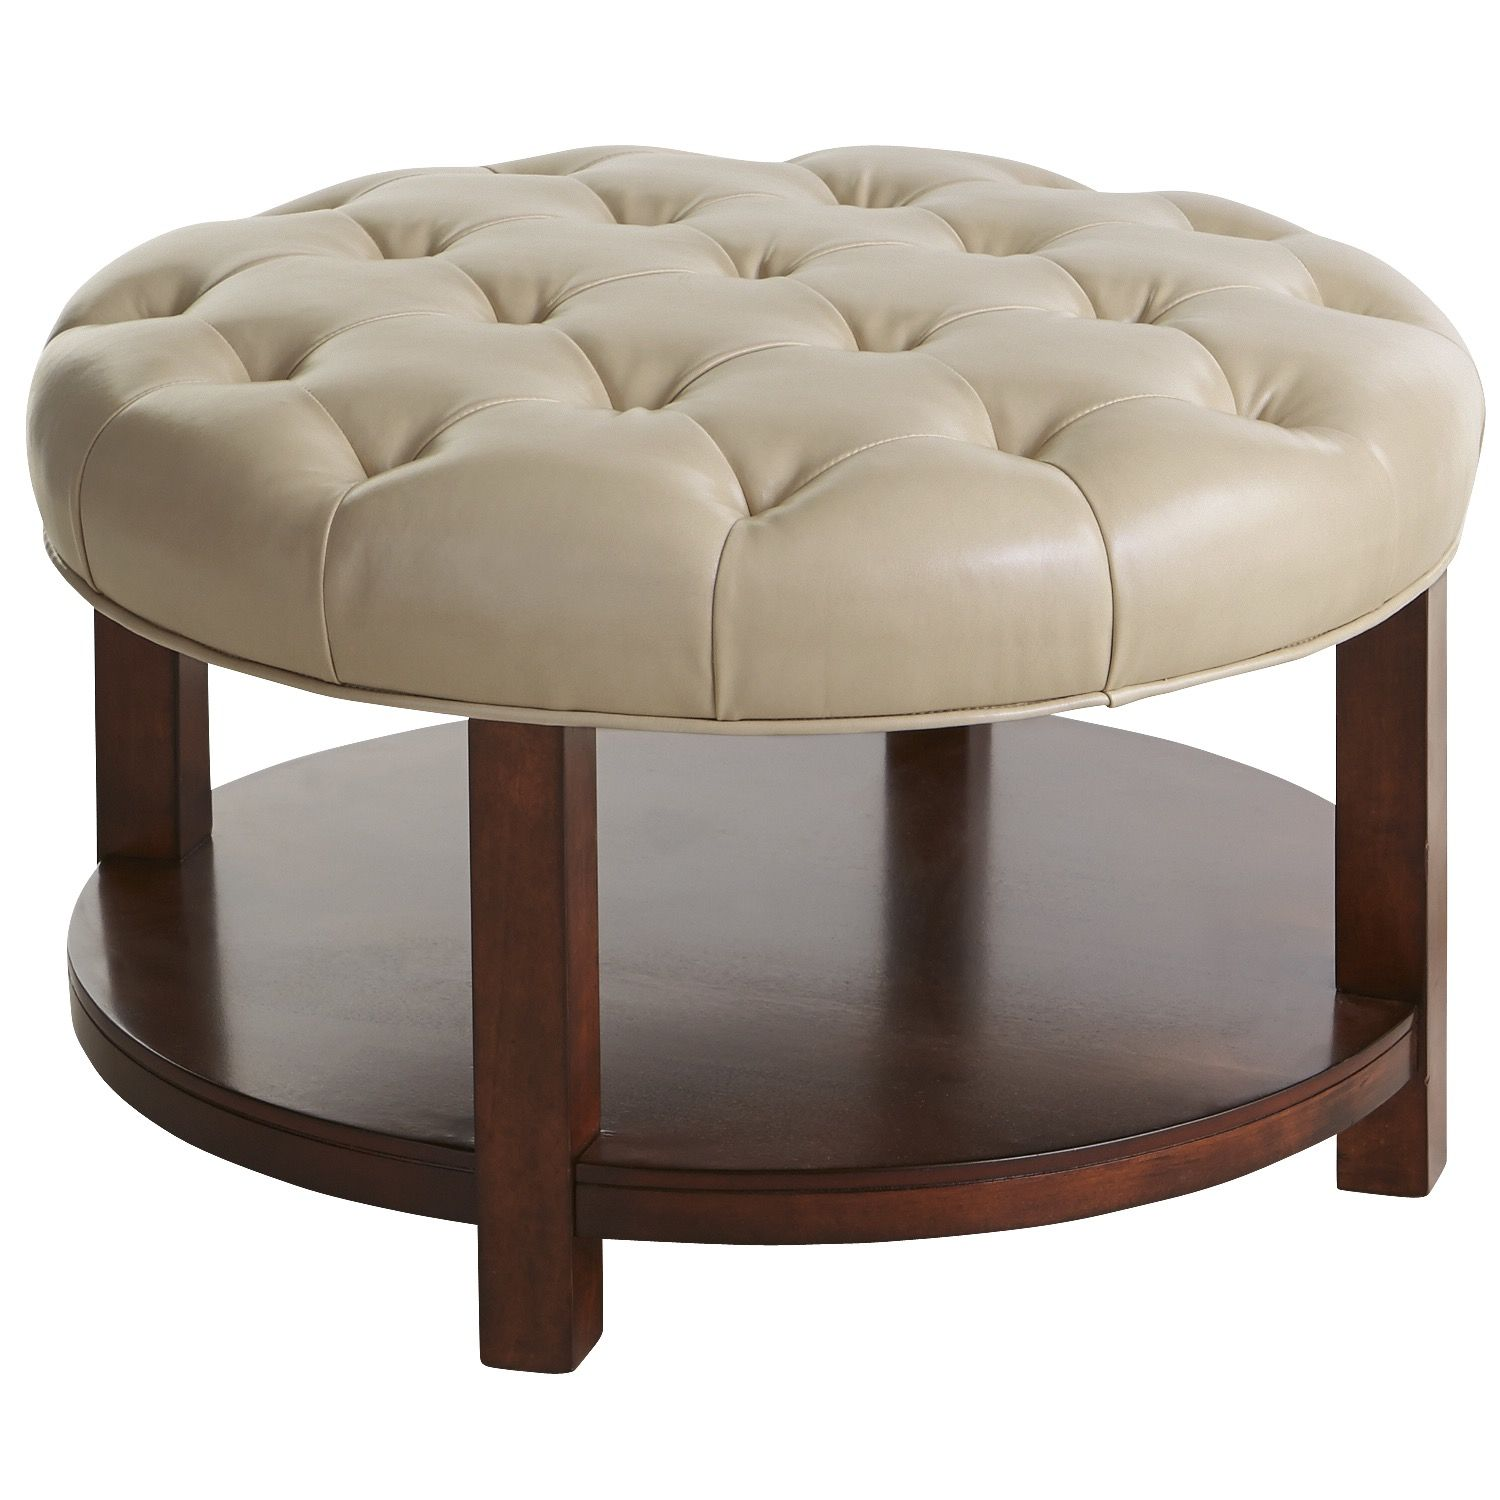 Large Round Leather Ottoman Coffee Table